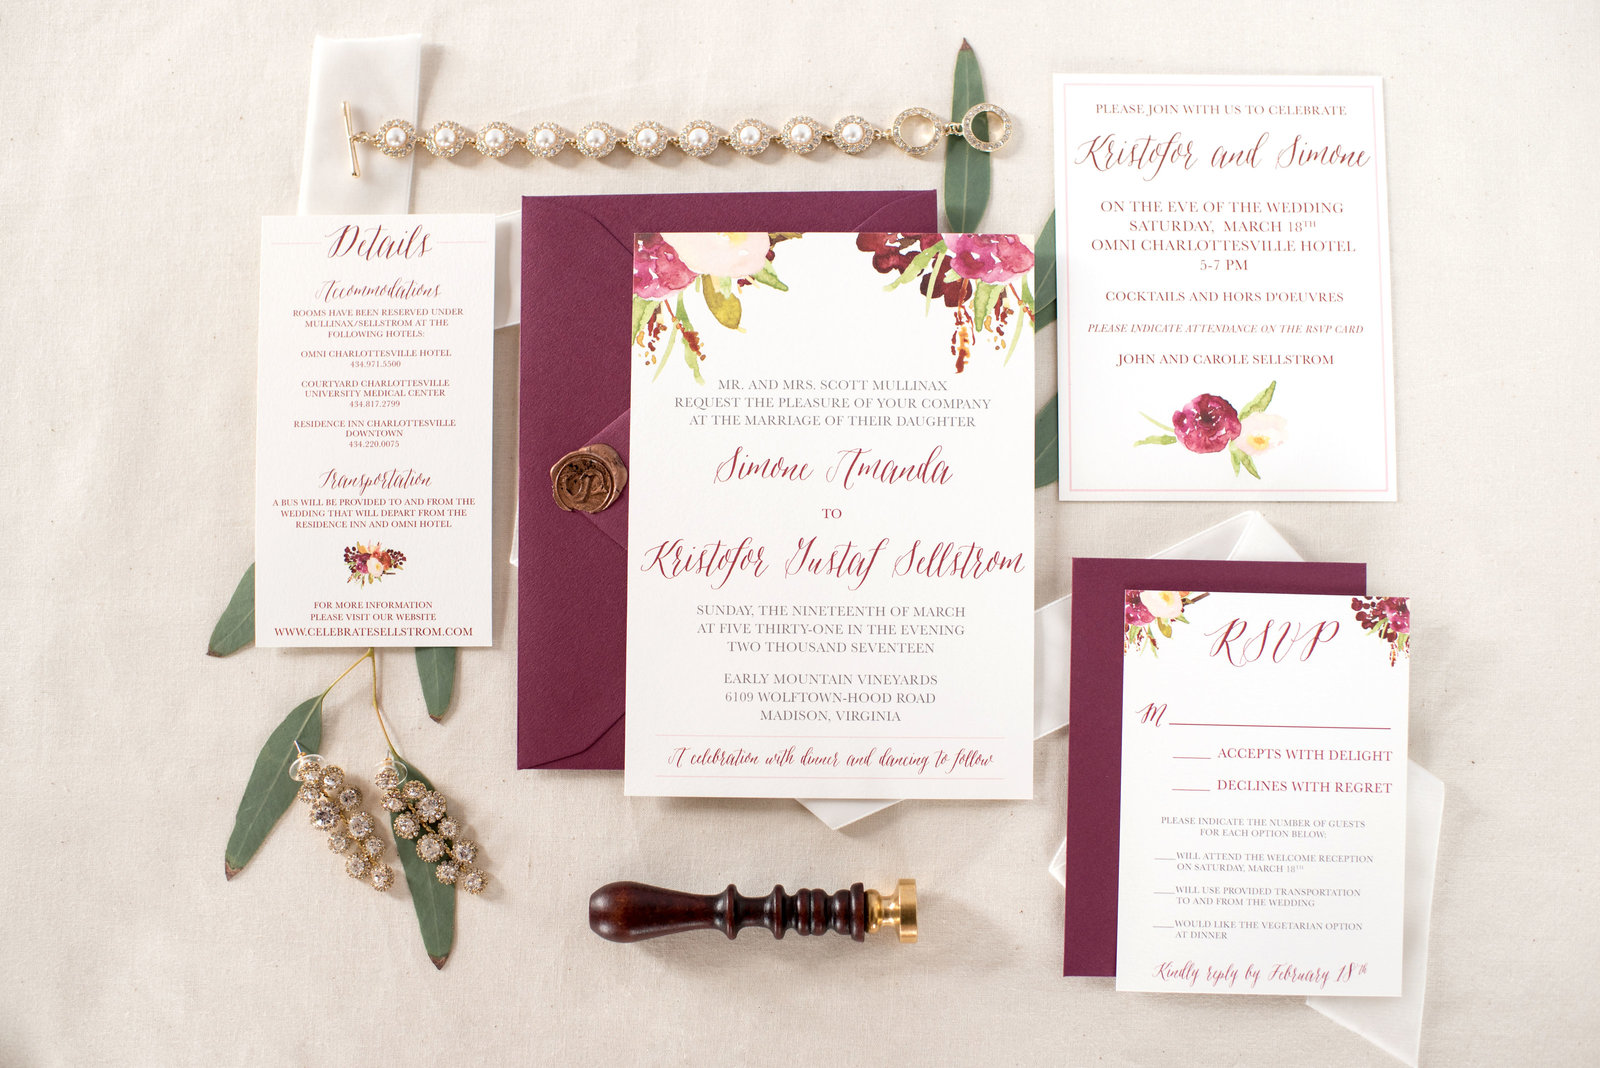 Styled Invitation Suite for Early Mountain Vineyard Wedding